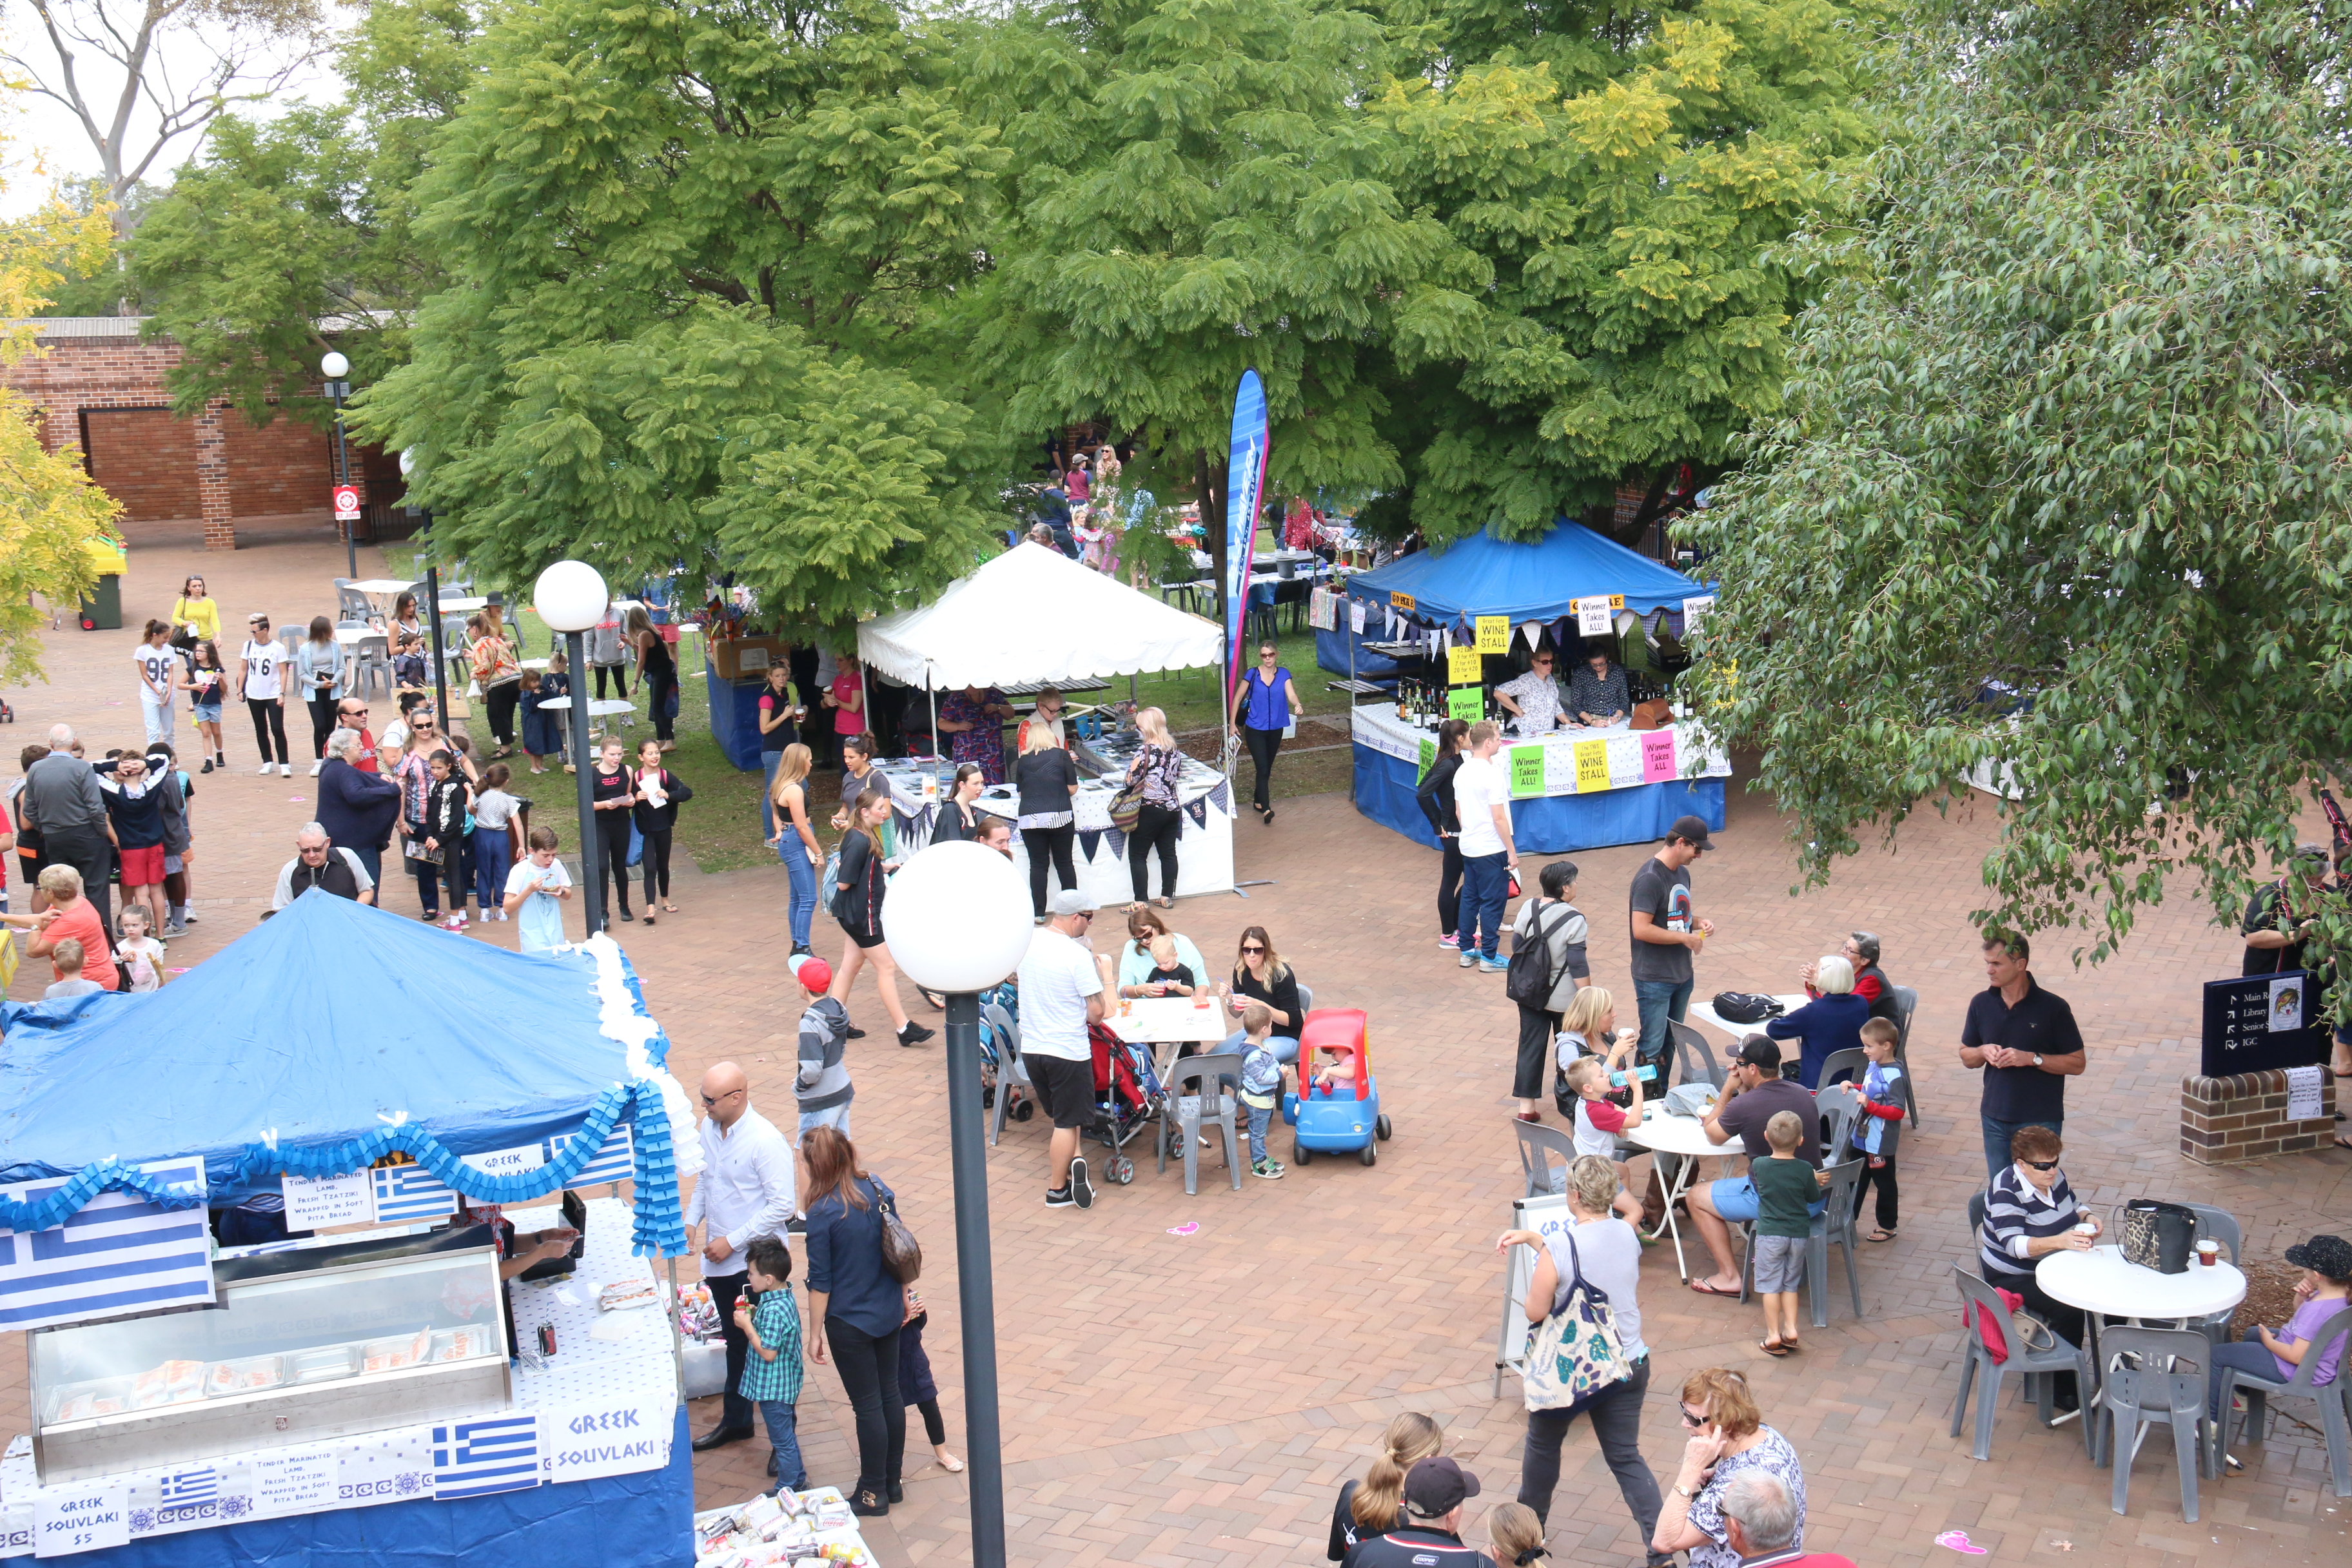 Every year families flock to the TIGS Great Fete to enjoy food, entertainment and the sense of community.